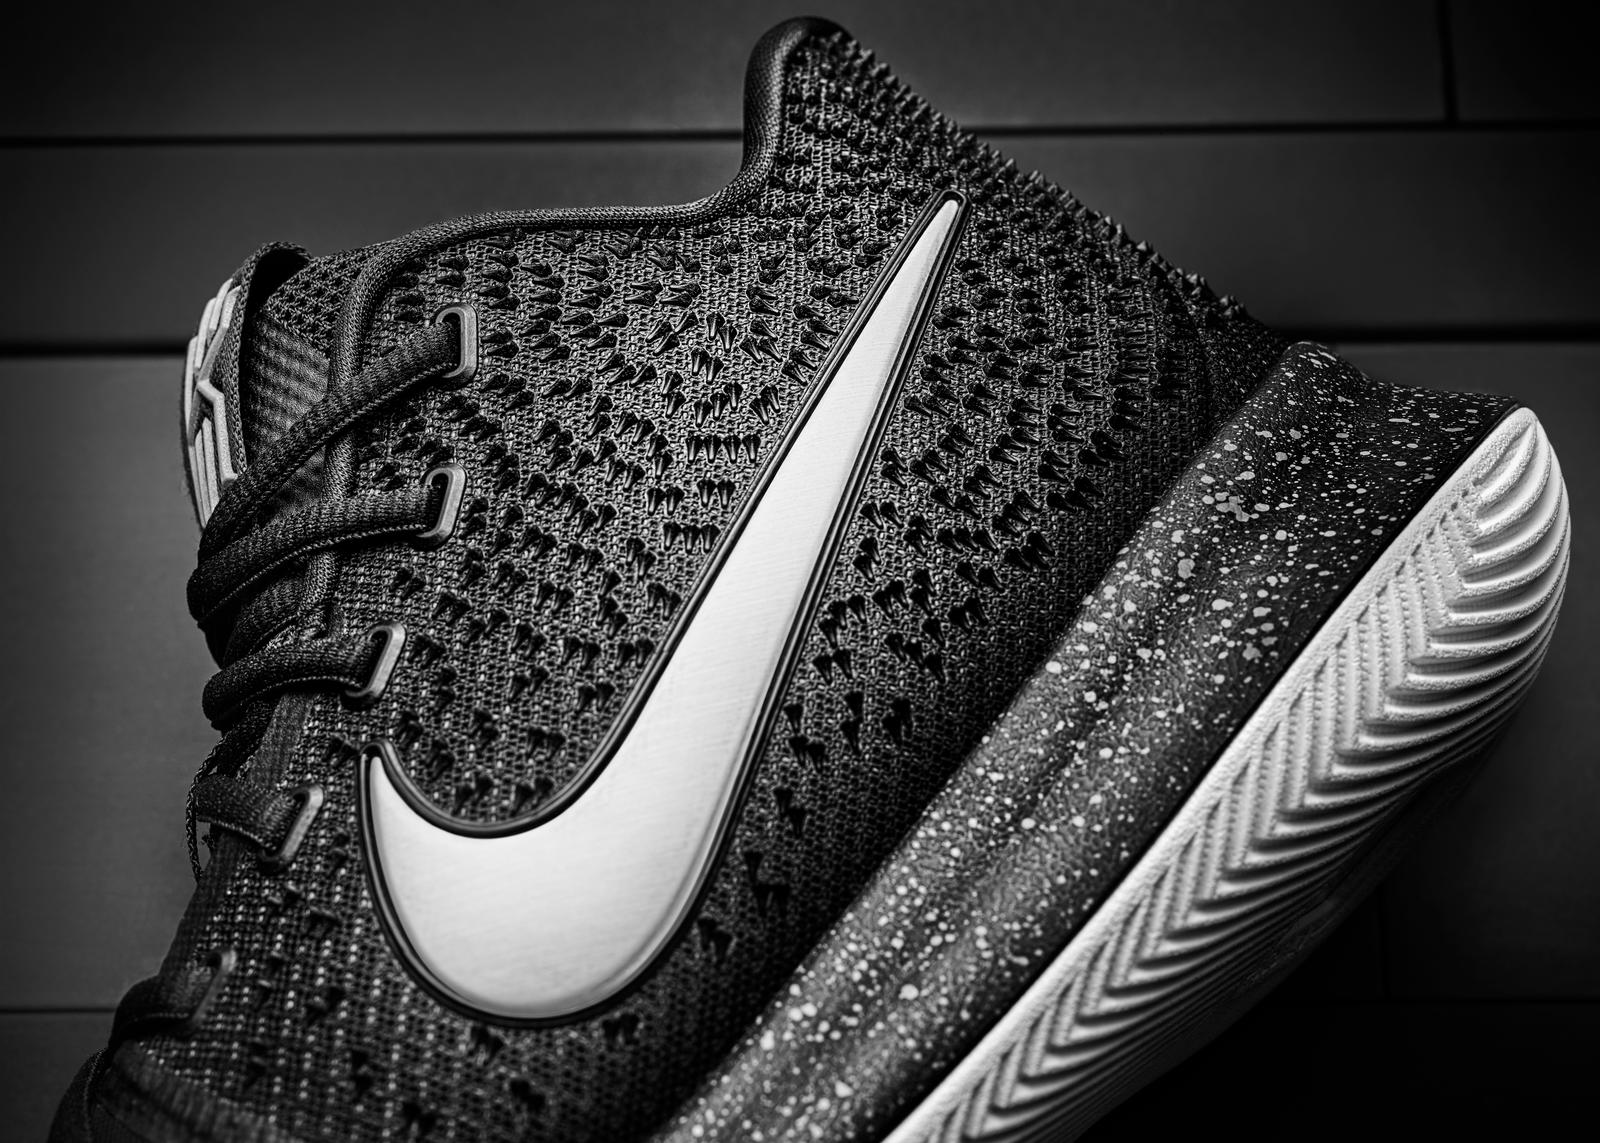 16-400_Nike_Kyrie_3_Side_Texture-01_rectangle_1600